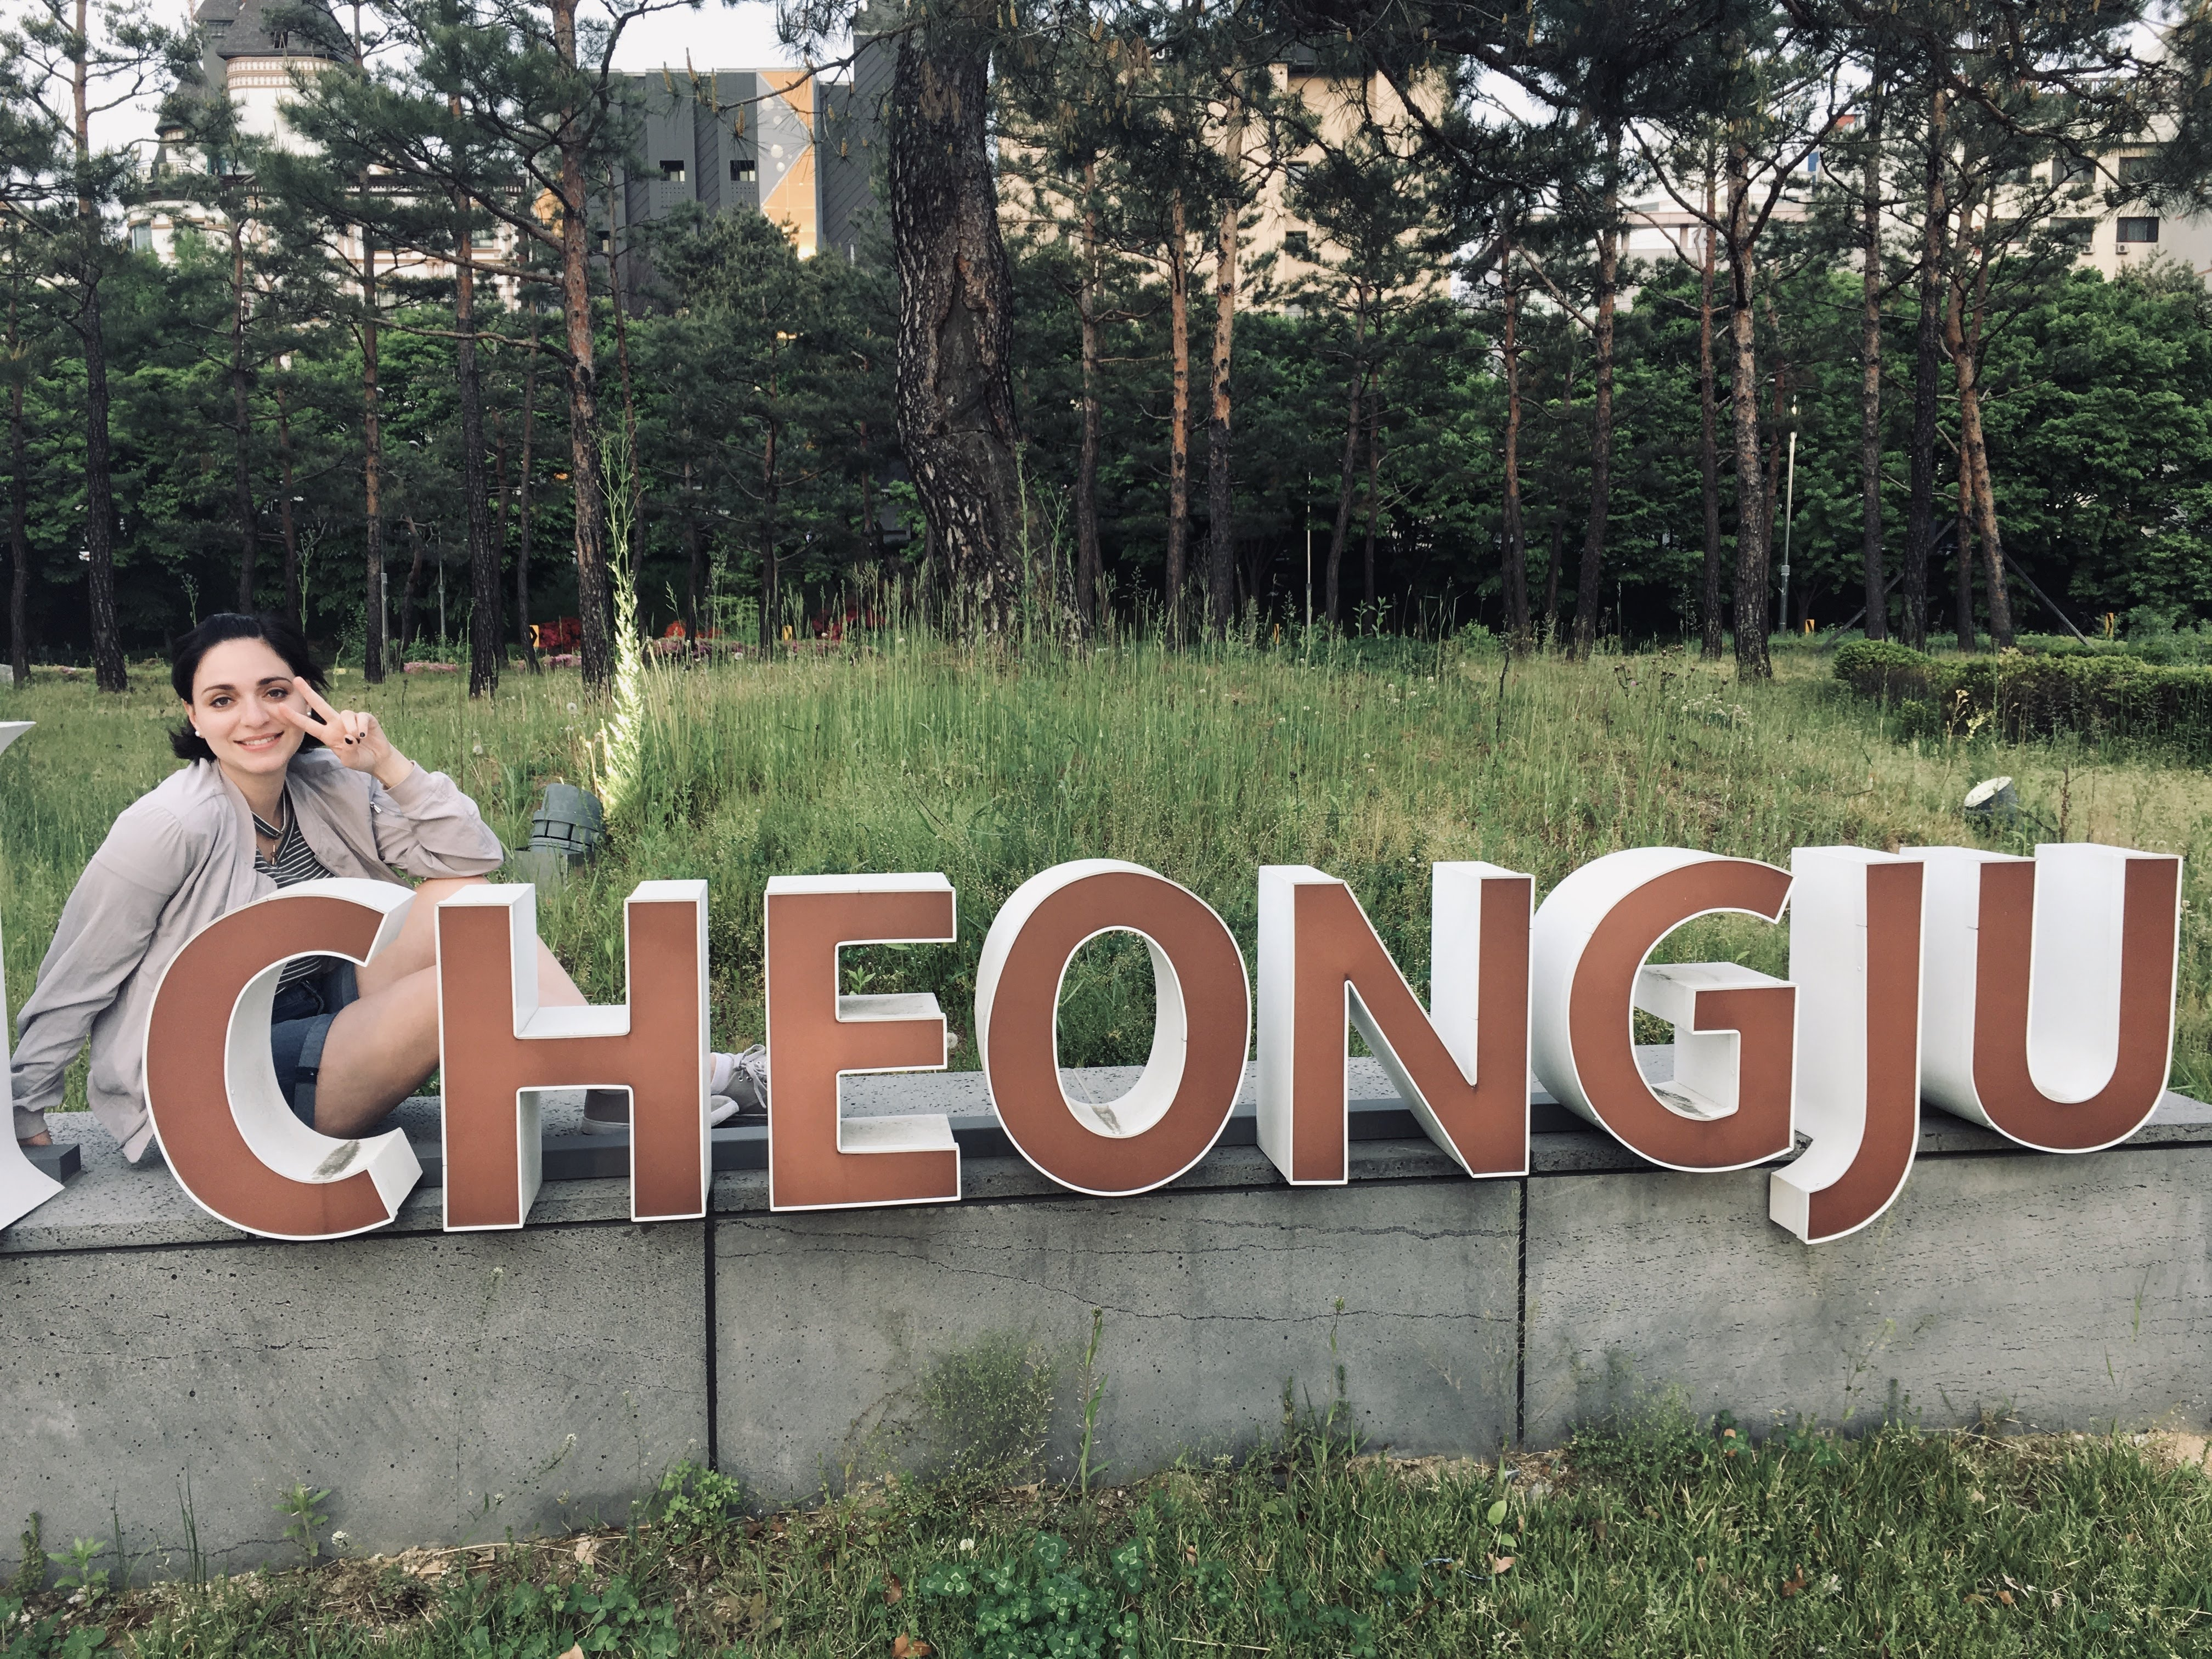 Teaching English in Cheongju, South Korea - Alumni Q&A with Samantha DiVito